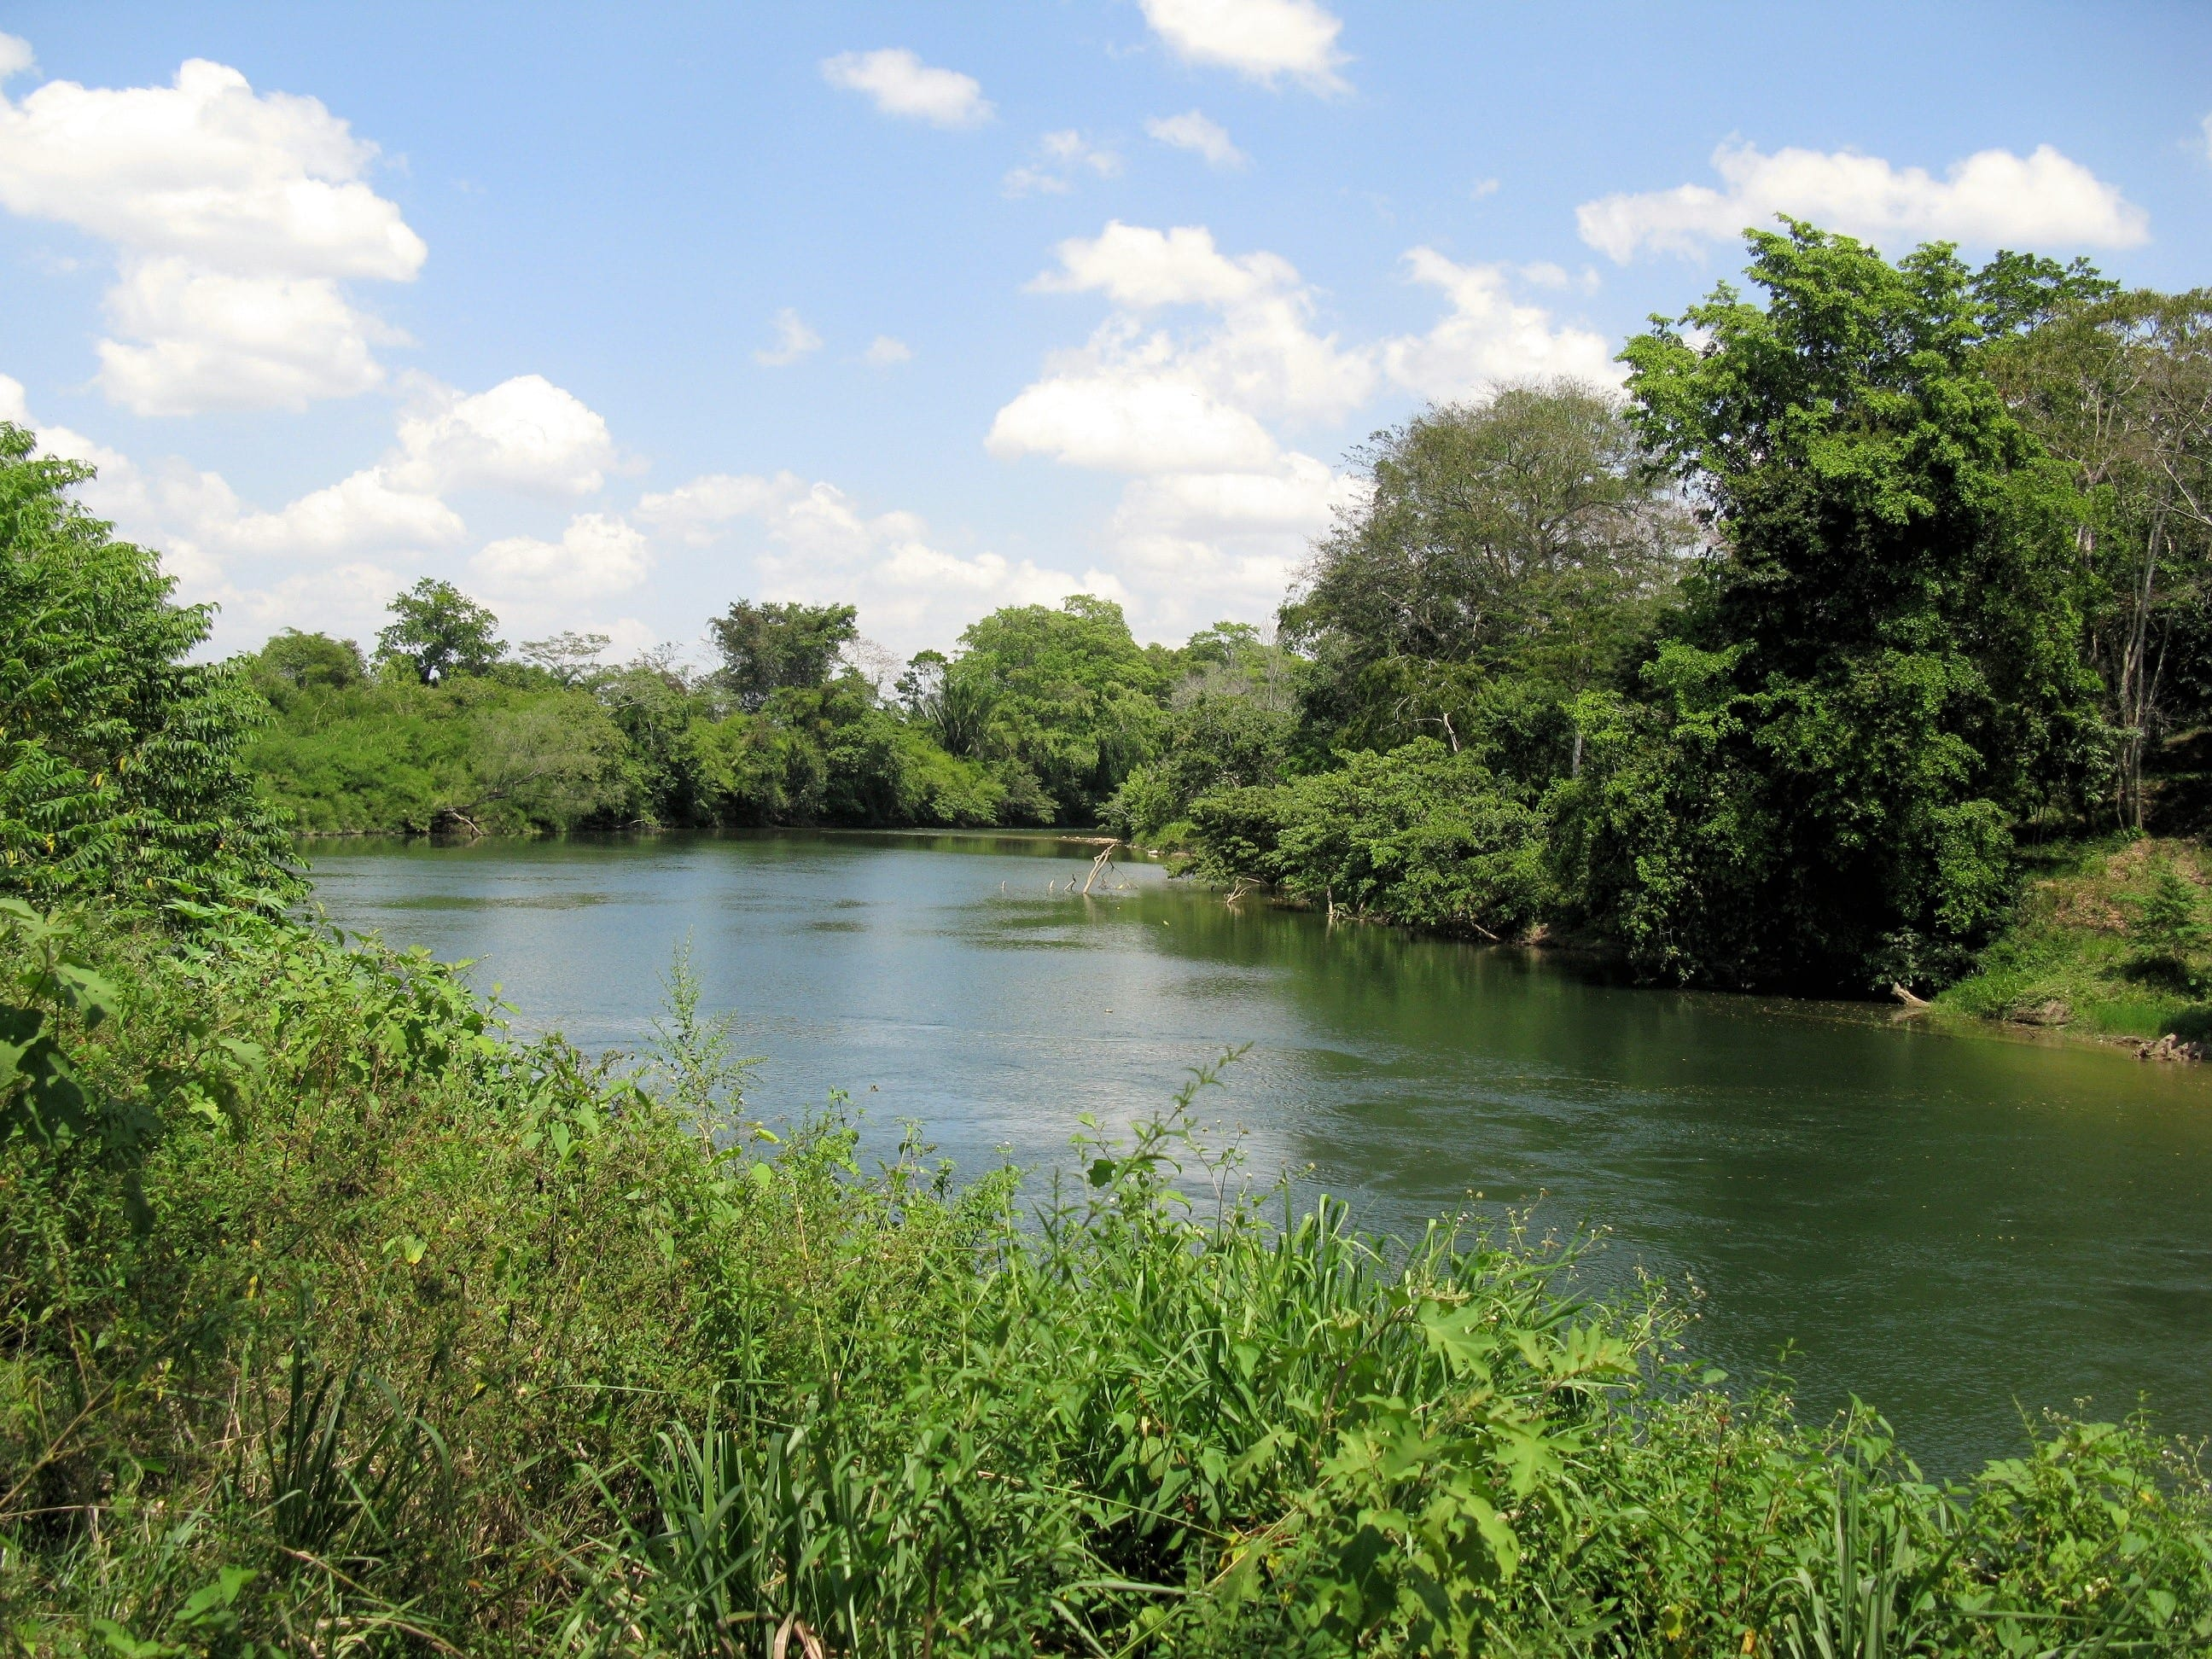 The Belize River